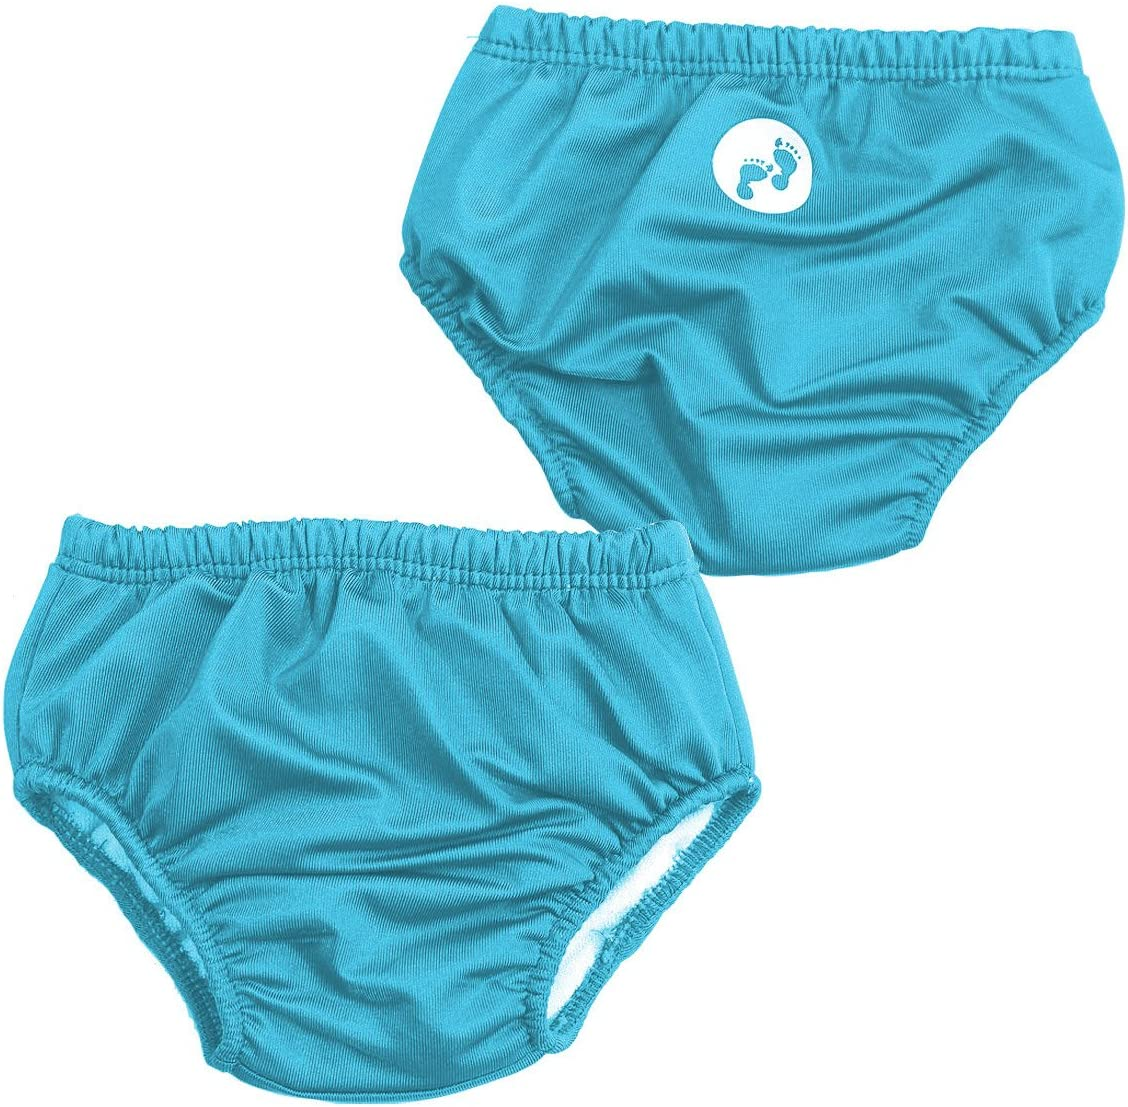 Mikes Diving Swim Nappy by Two Bare Feet Swimming nappie for use in pools etc